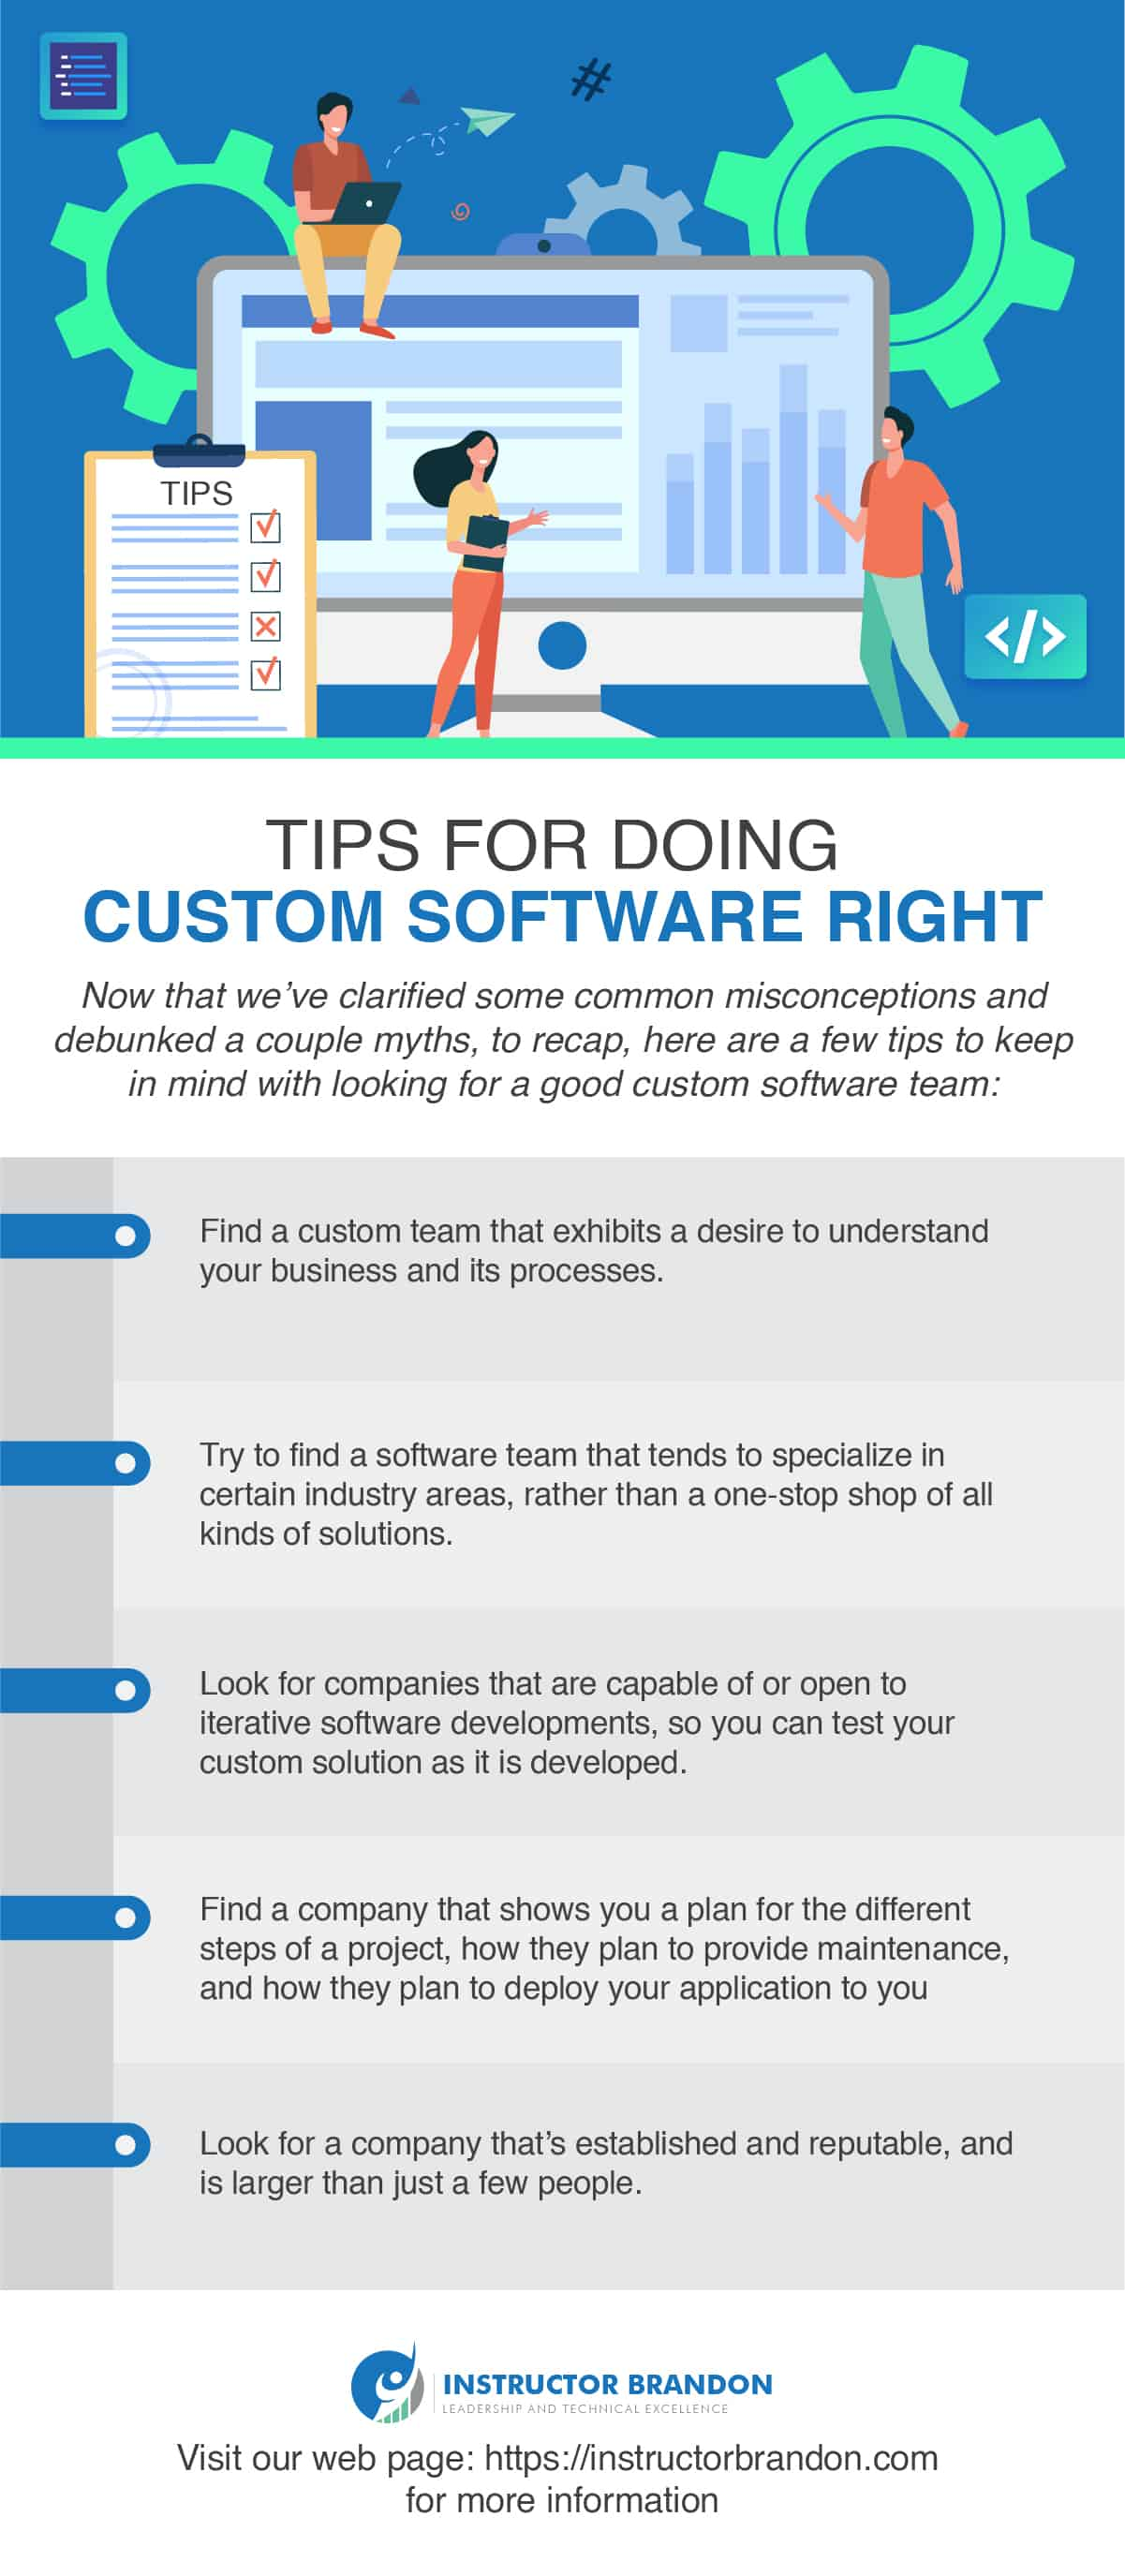 How customize your D365 ERP software right